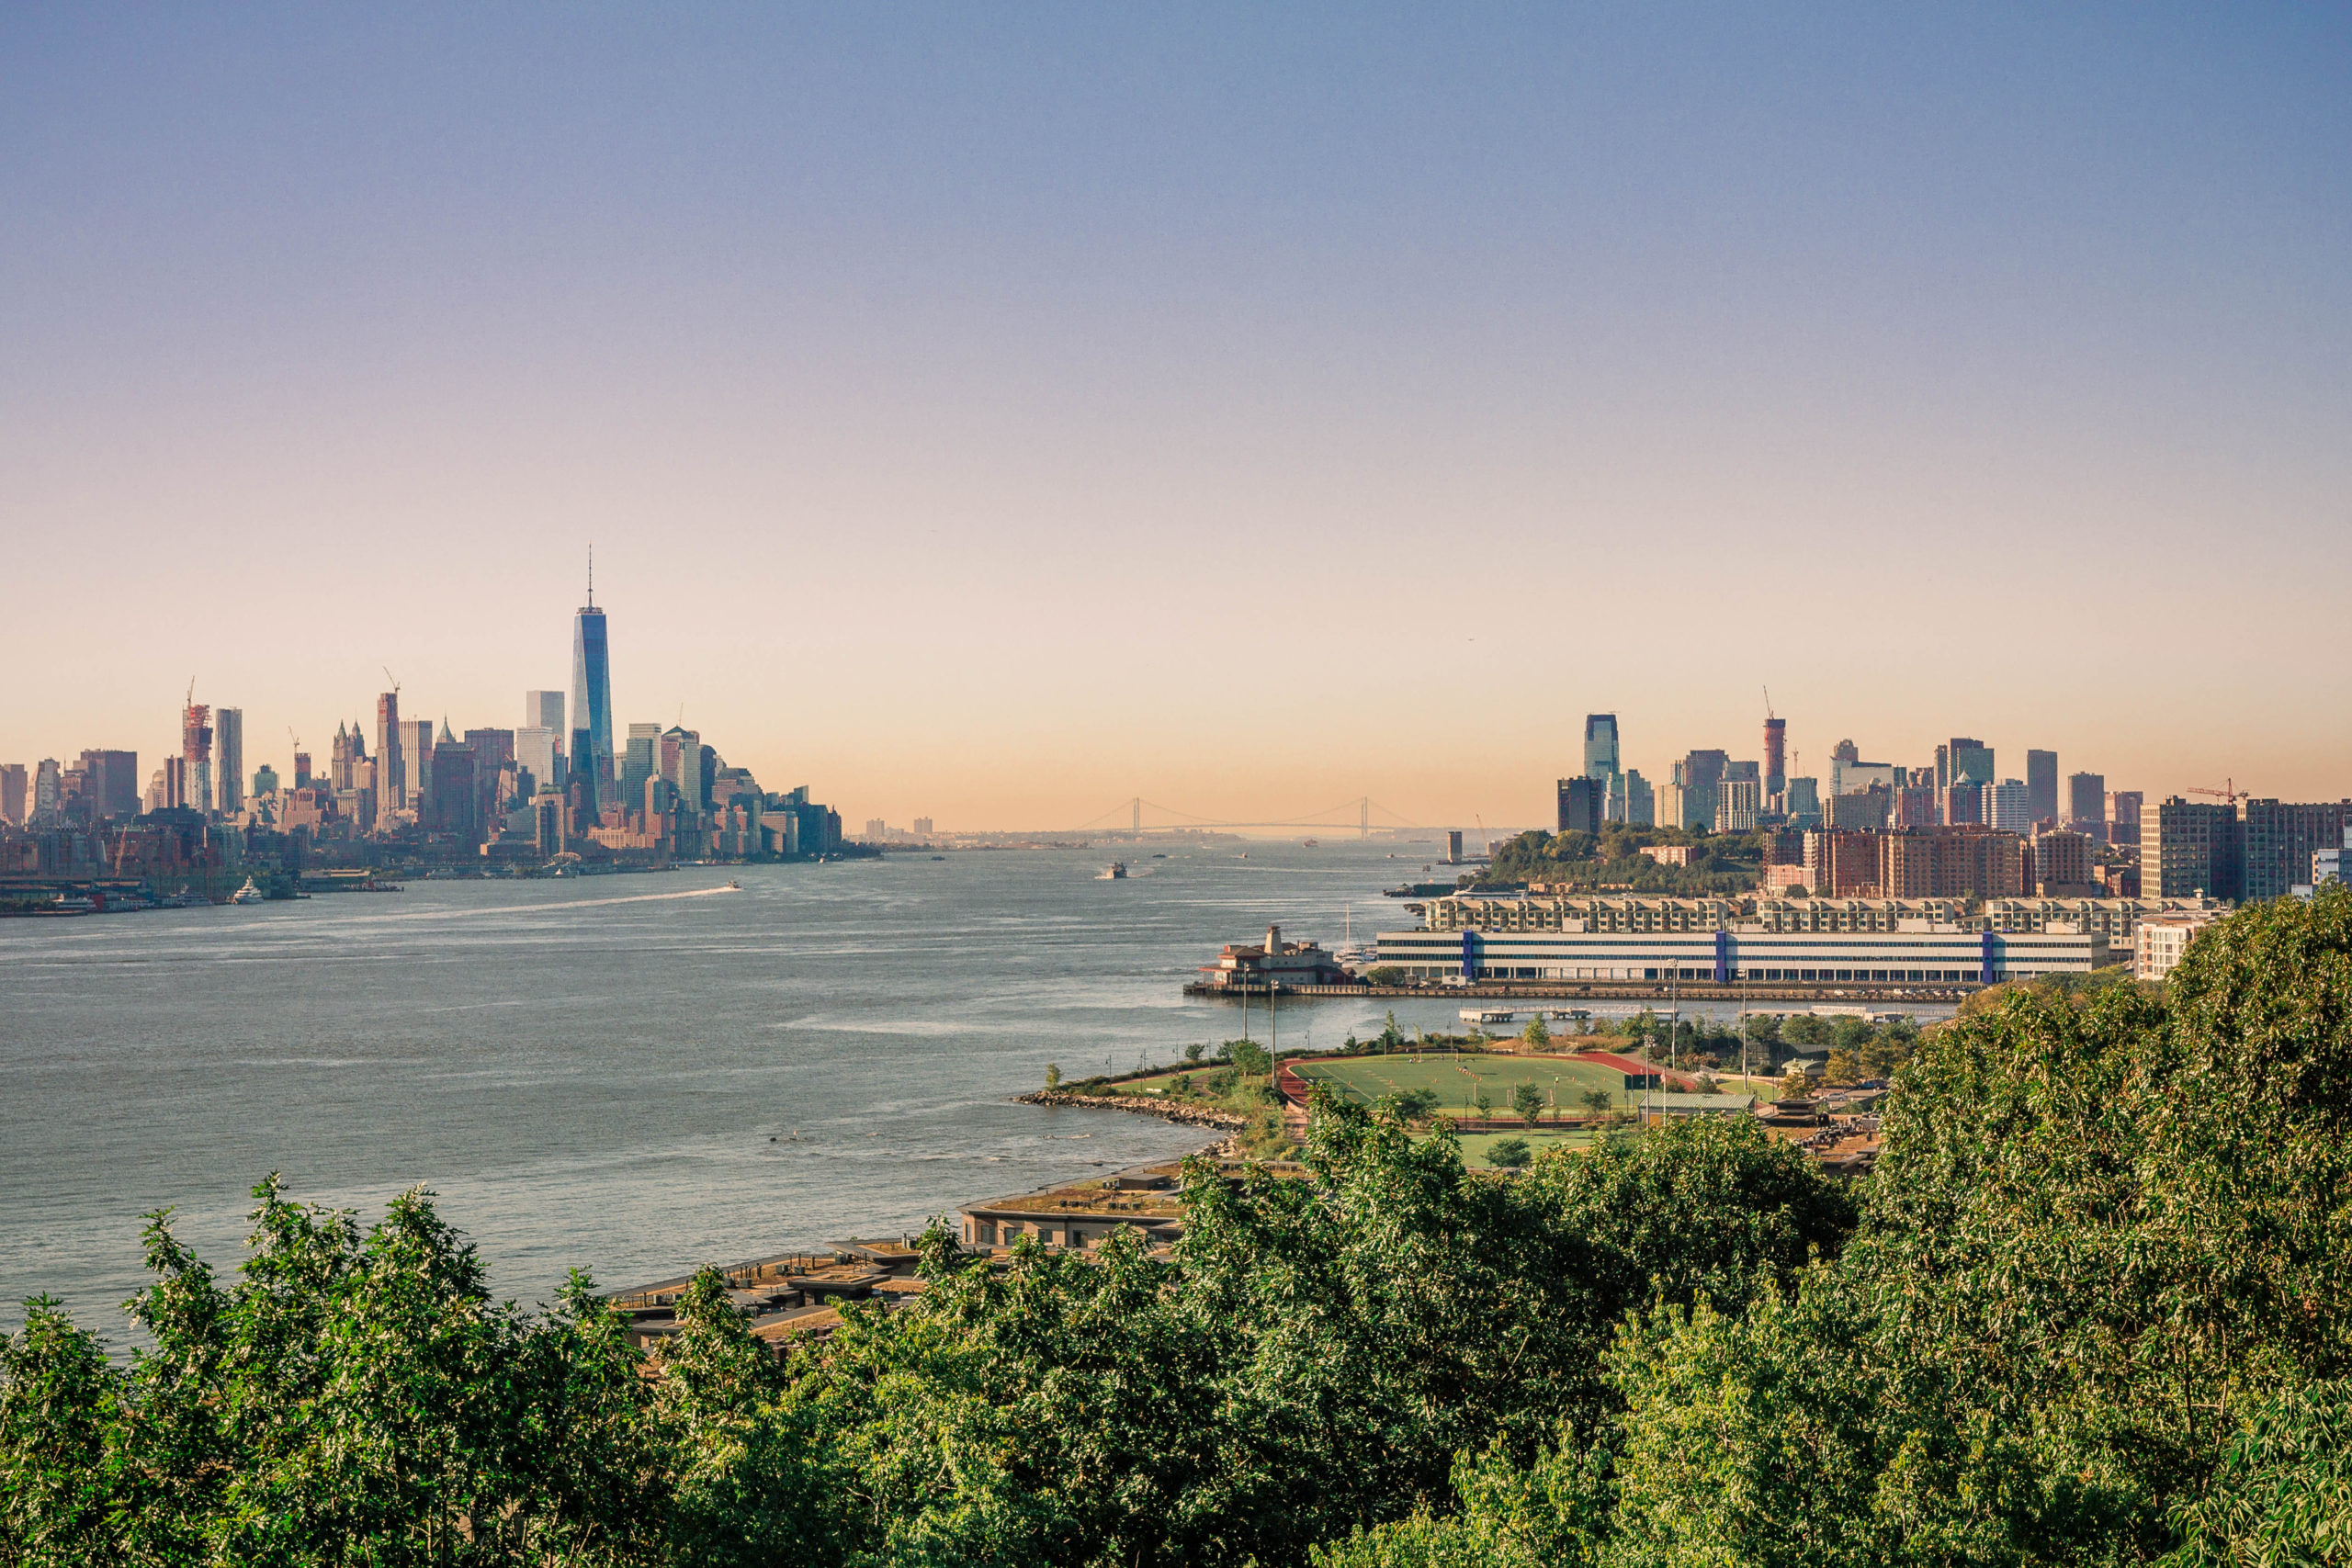 The skylines of New York and New Jersey with the Hudson River in between.